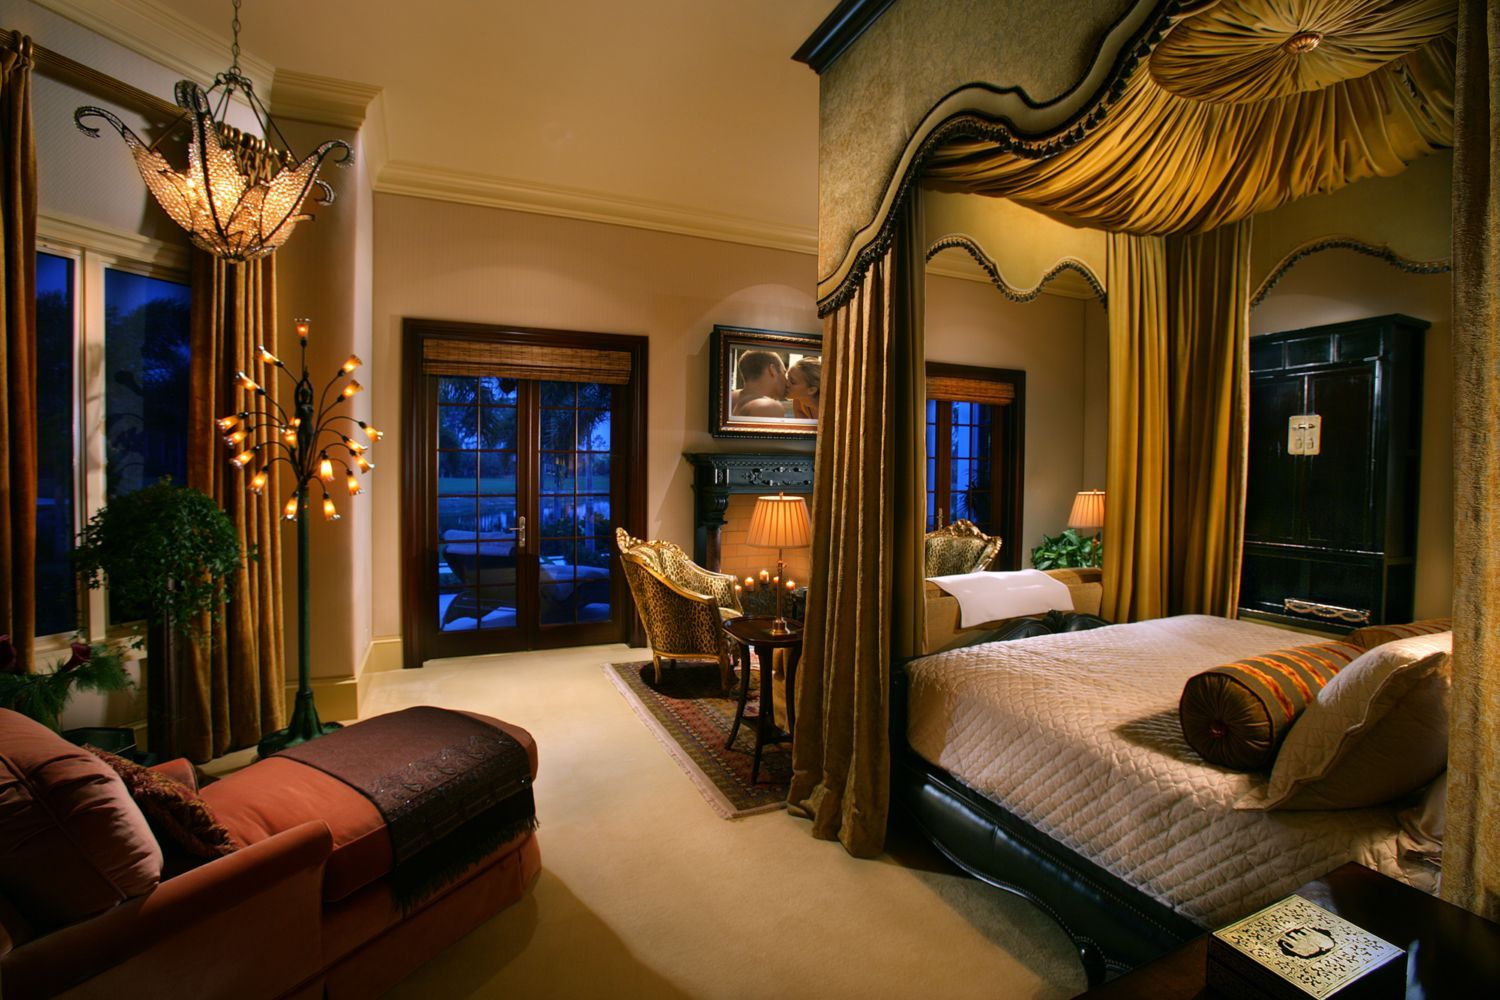 Breathtaking gorgeous romantic bedroom for couples